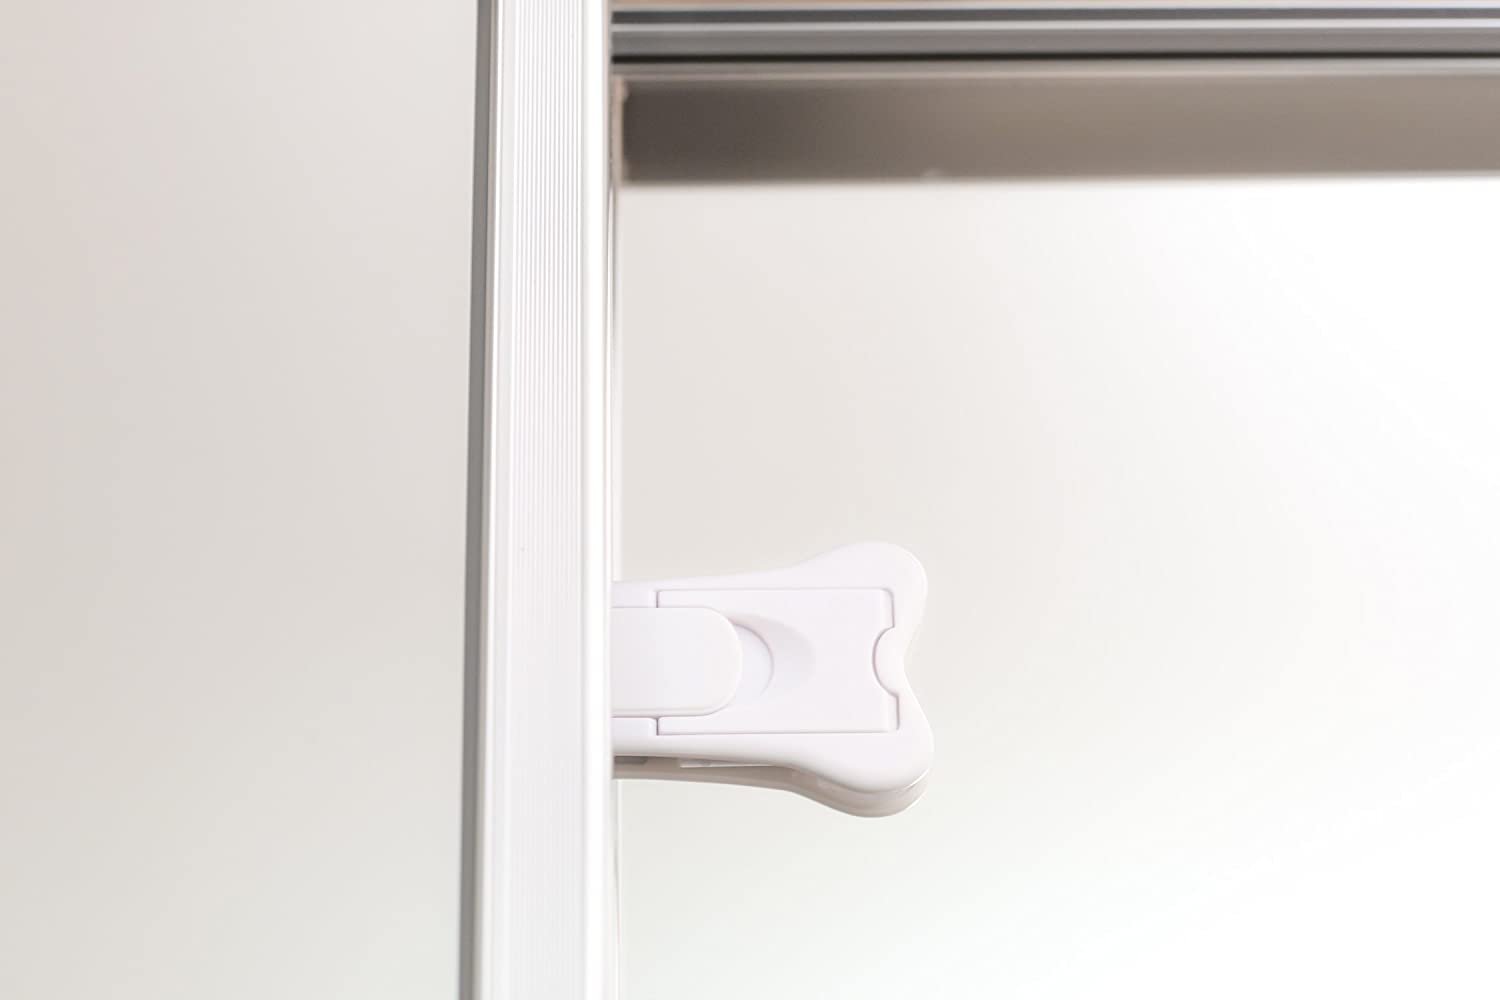 Shower Sliding Doors 4 Pack, White Closet Sliding Door Locks for Baby Proofing Keyless Child Safety Locks For Patio No Tools Install Shutters /& more